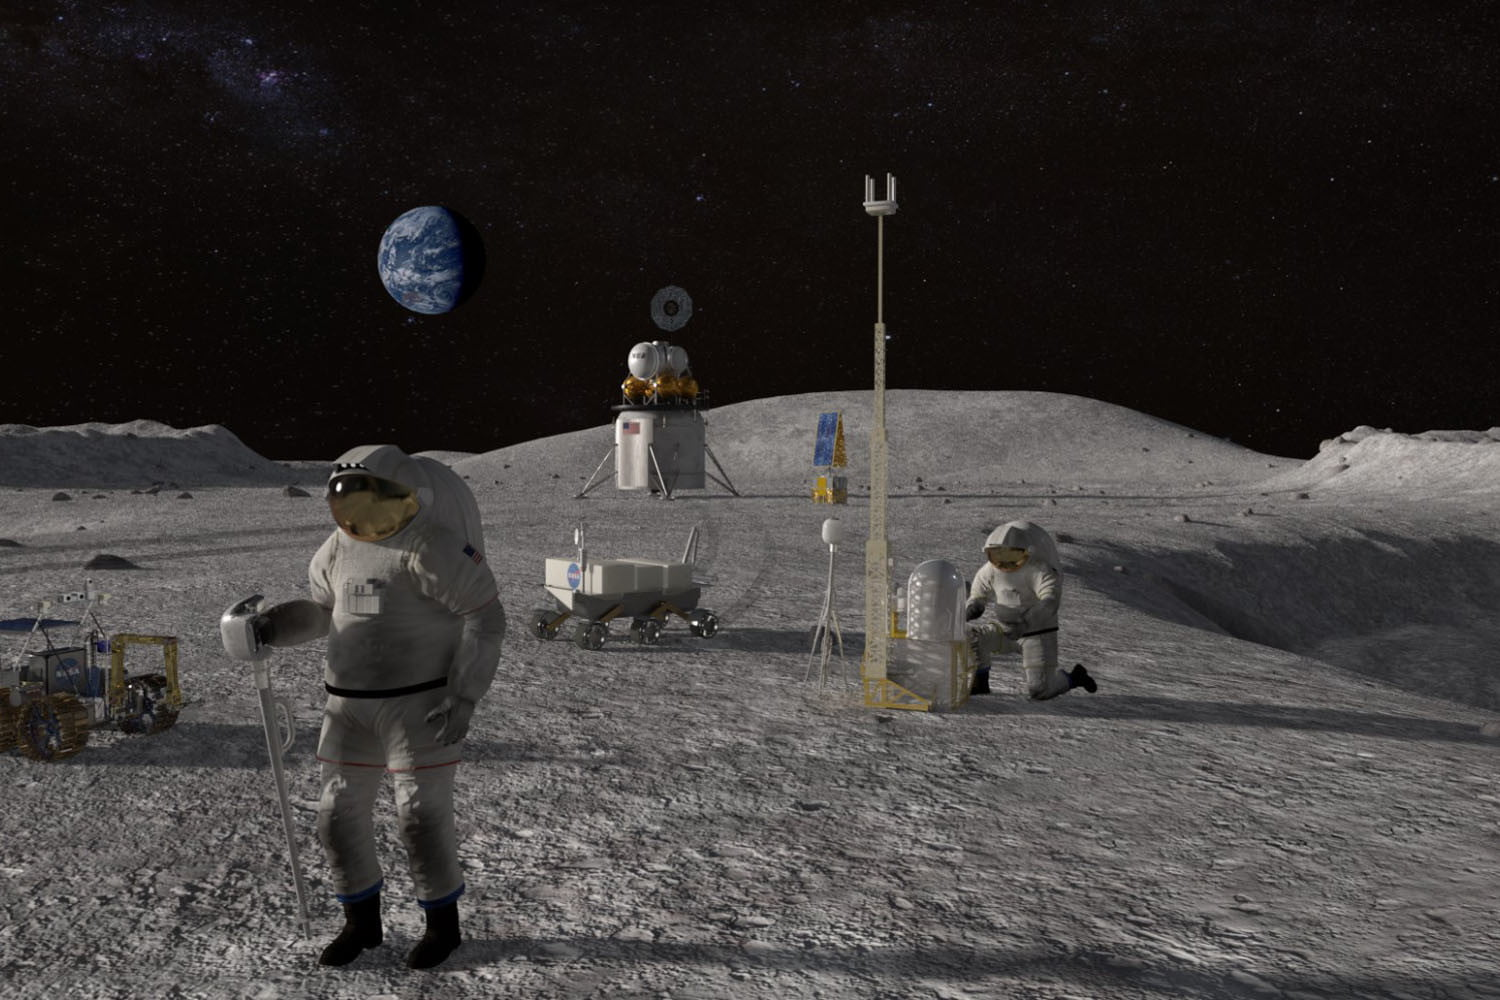 NASA hasn't been to the moon in almost 50 years. Now, it's going back annually